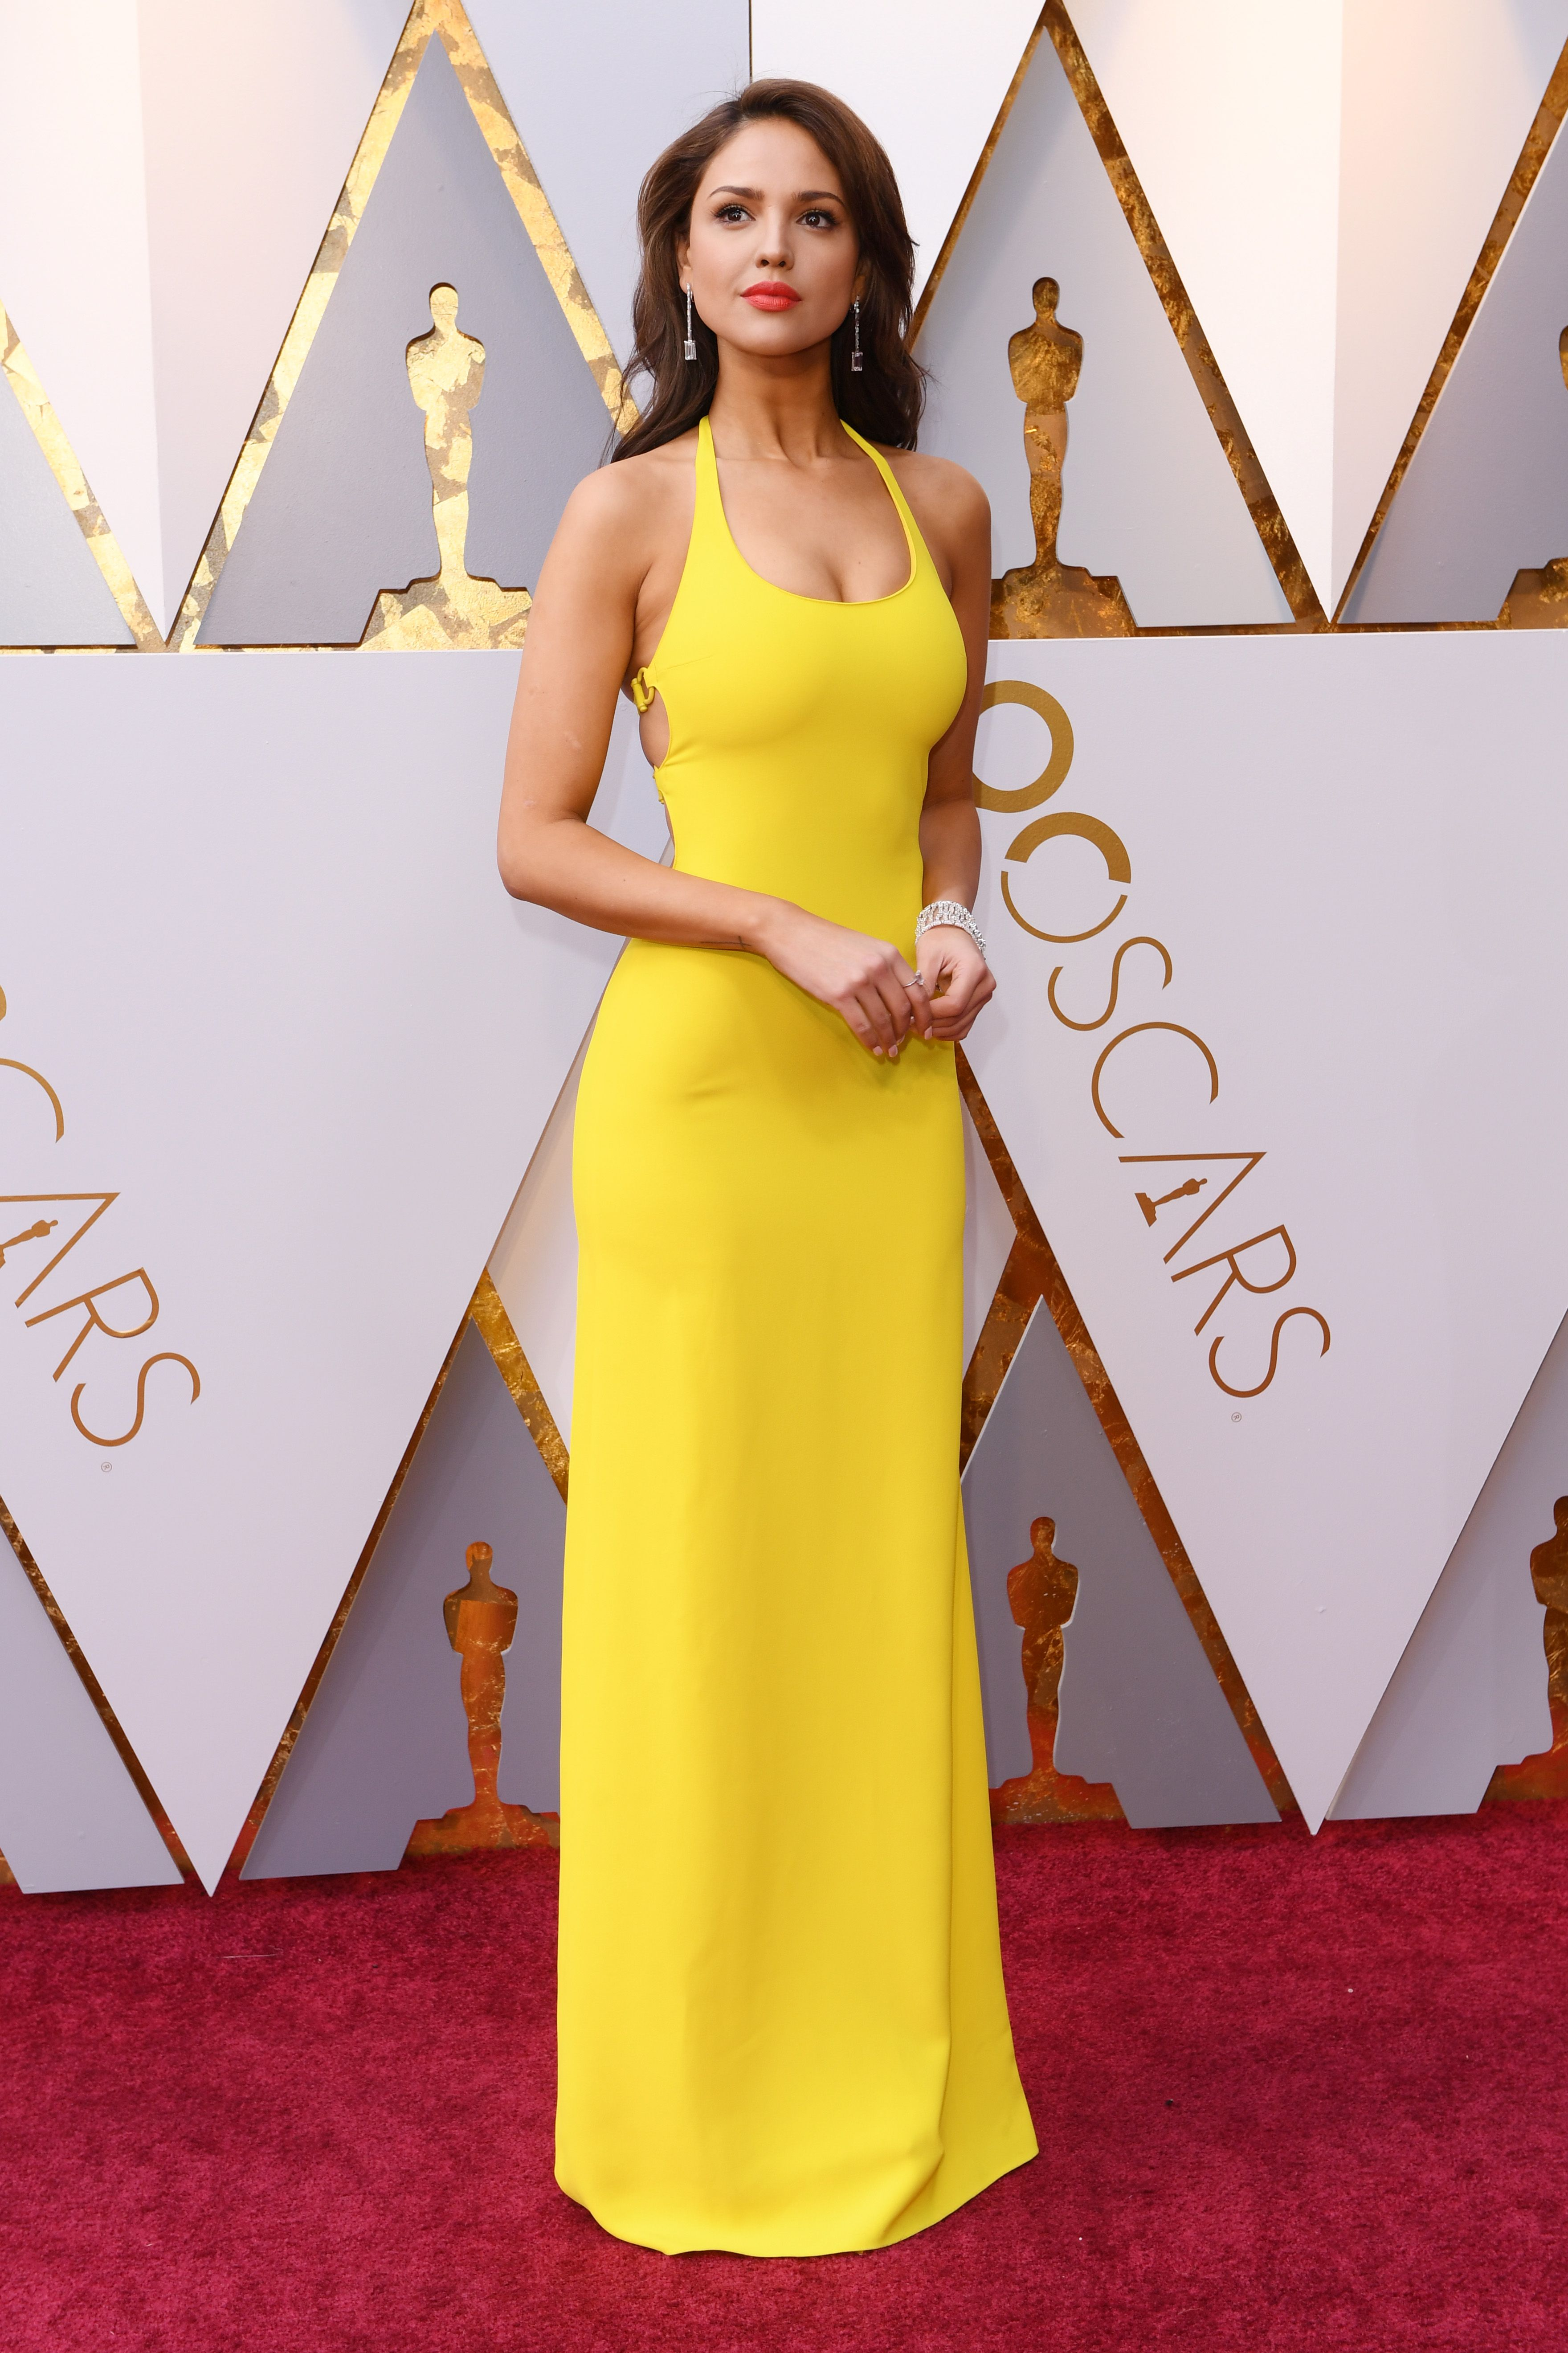 Oscars 2018 Red Carpet  Eiza Gonzalezk at the 2018 Academy Awards 67195181a